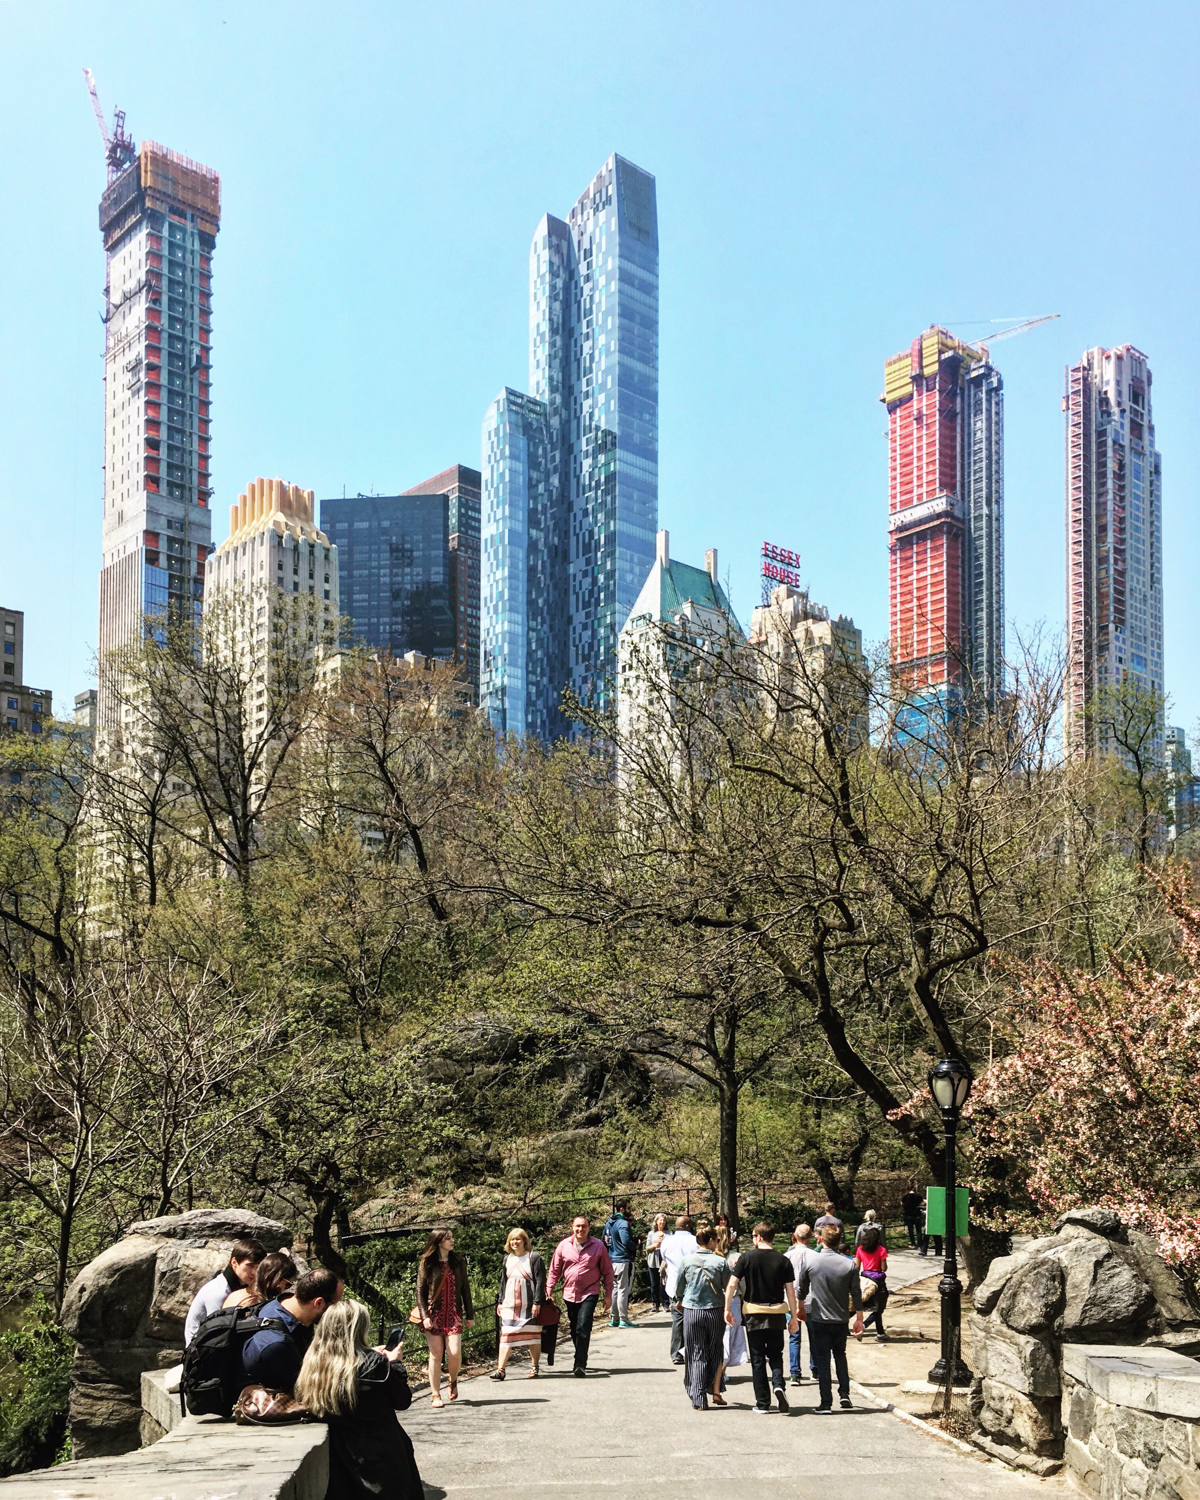 Cetral Park: Central Park Tower, Country's Tallest Building Under